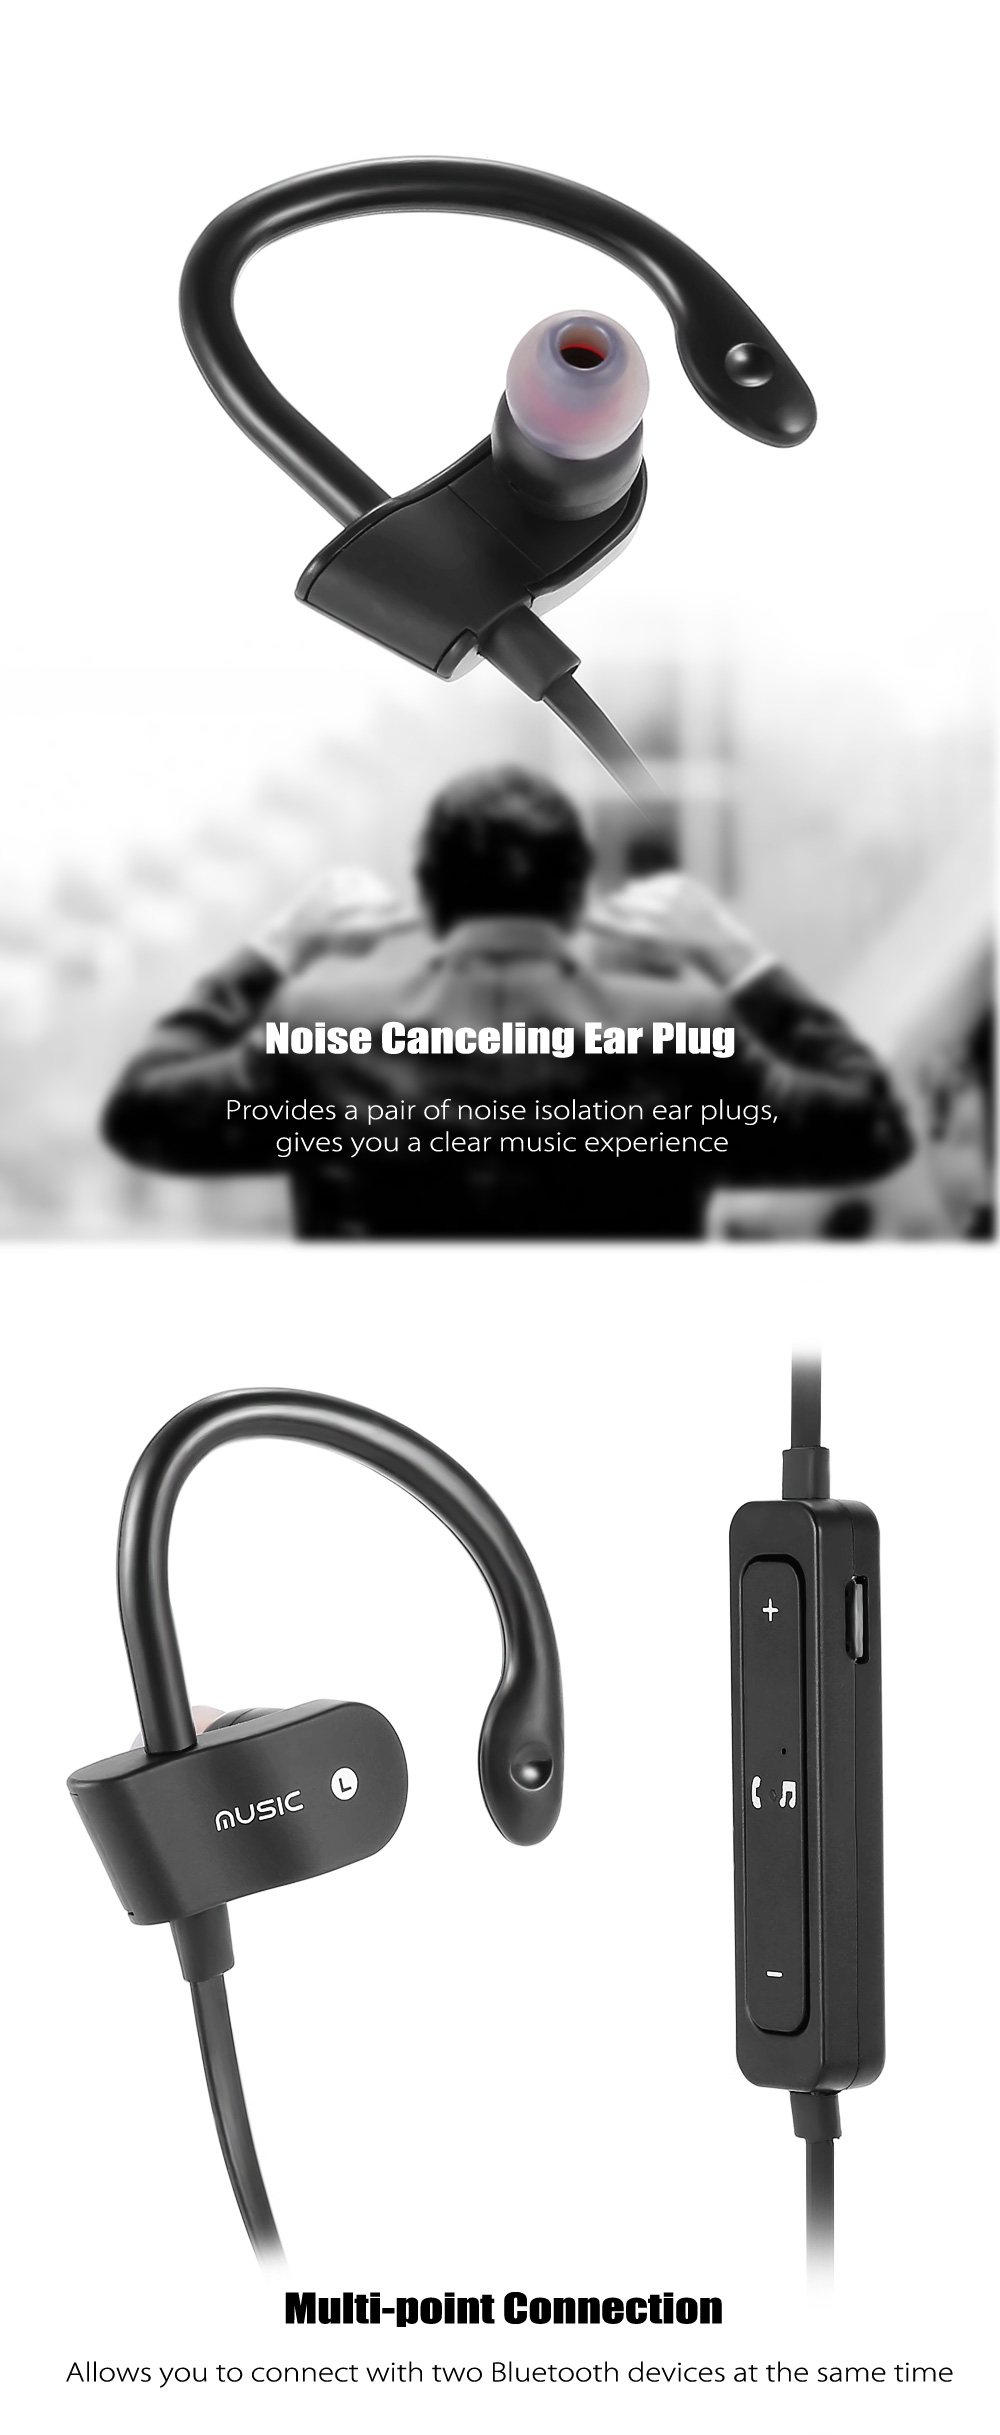 56S Wireless Bluetooth 4.1 Ear-hook Sports Earbuds In-line Control Volume Control Song Switch